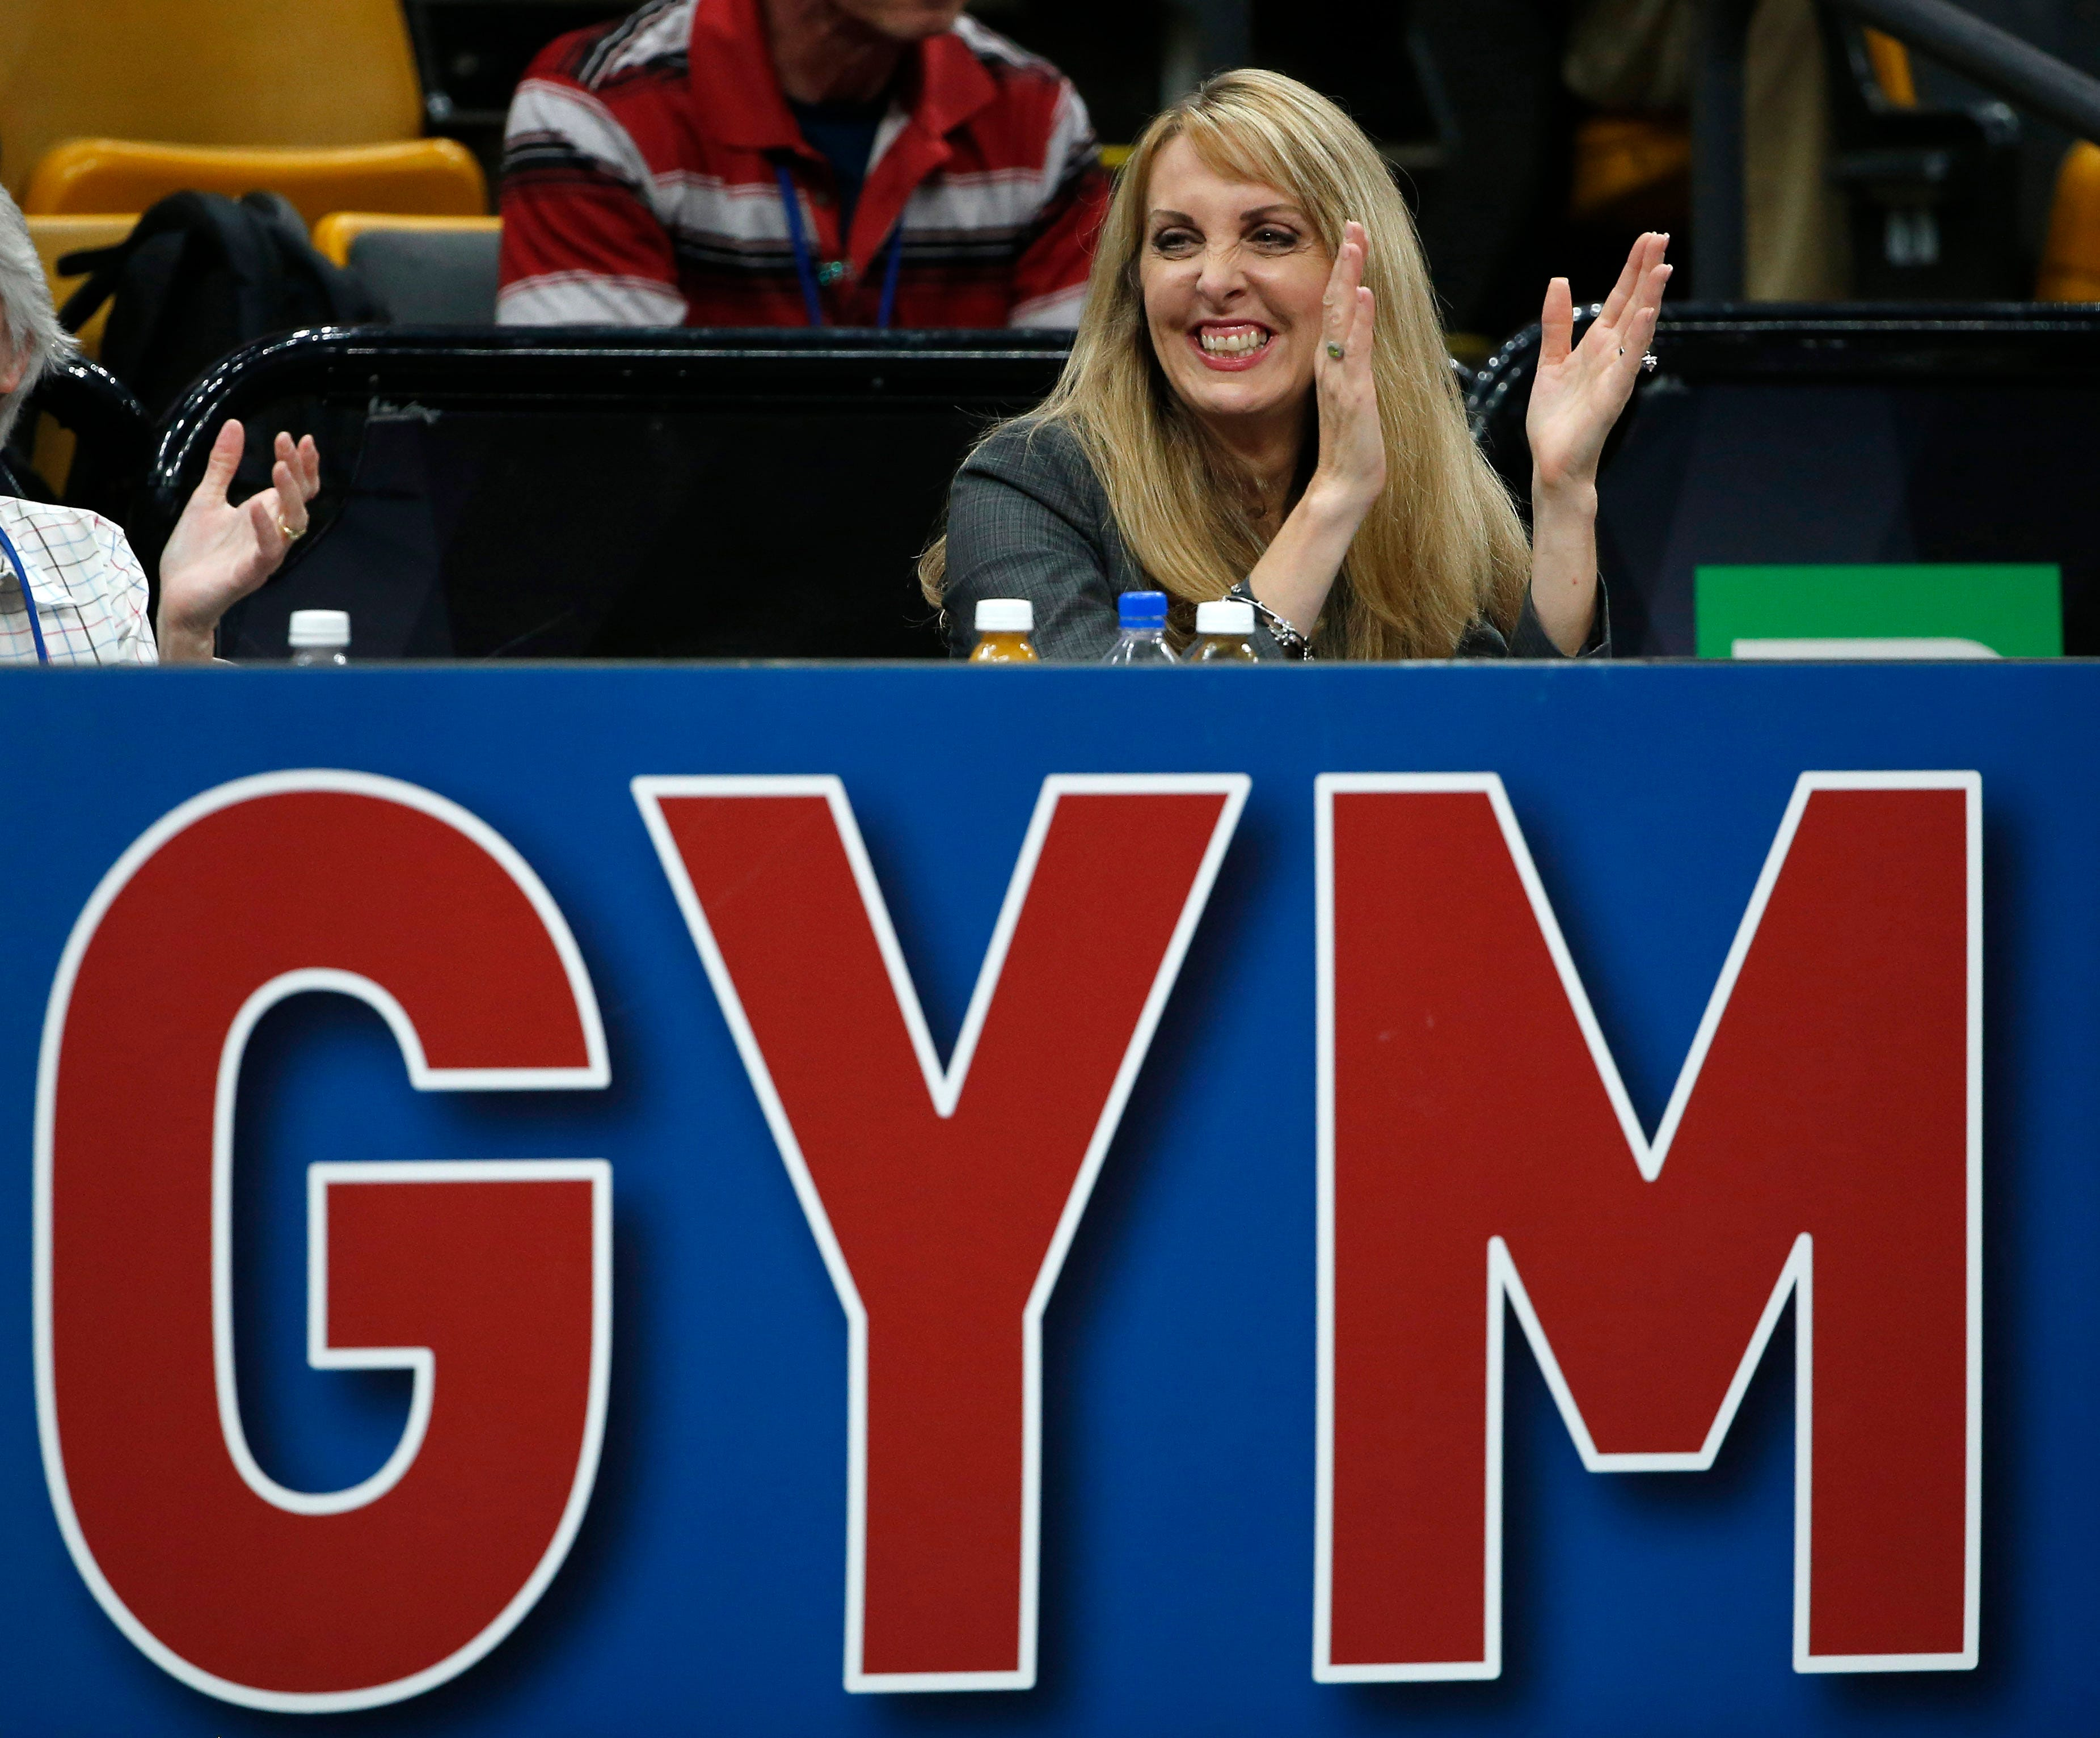 USA Gymnastics CEO needs to realize buzzwords won't fix crisis sparked by Larry Nassar